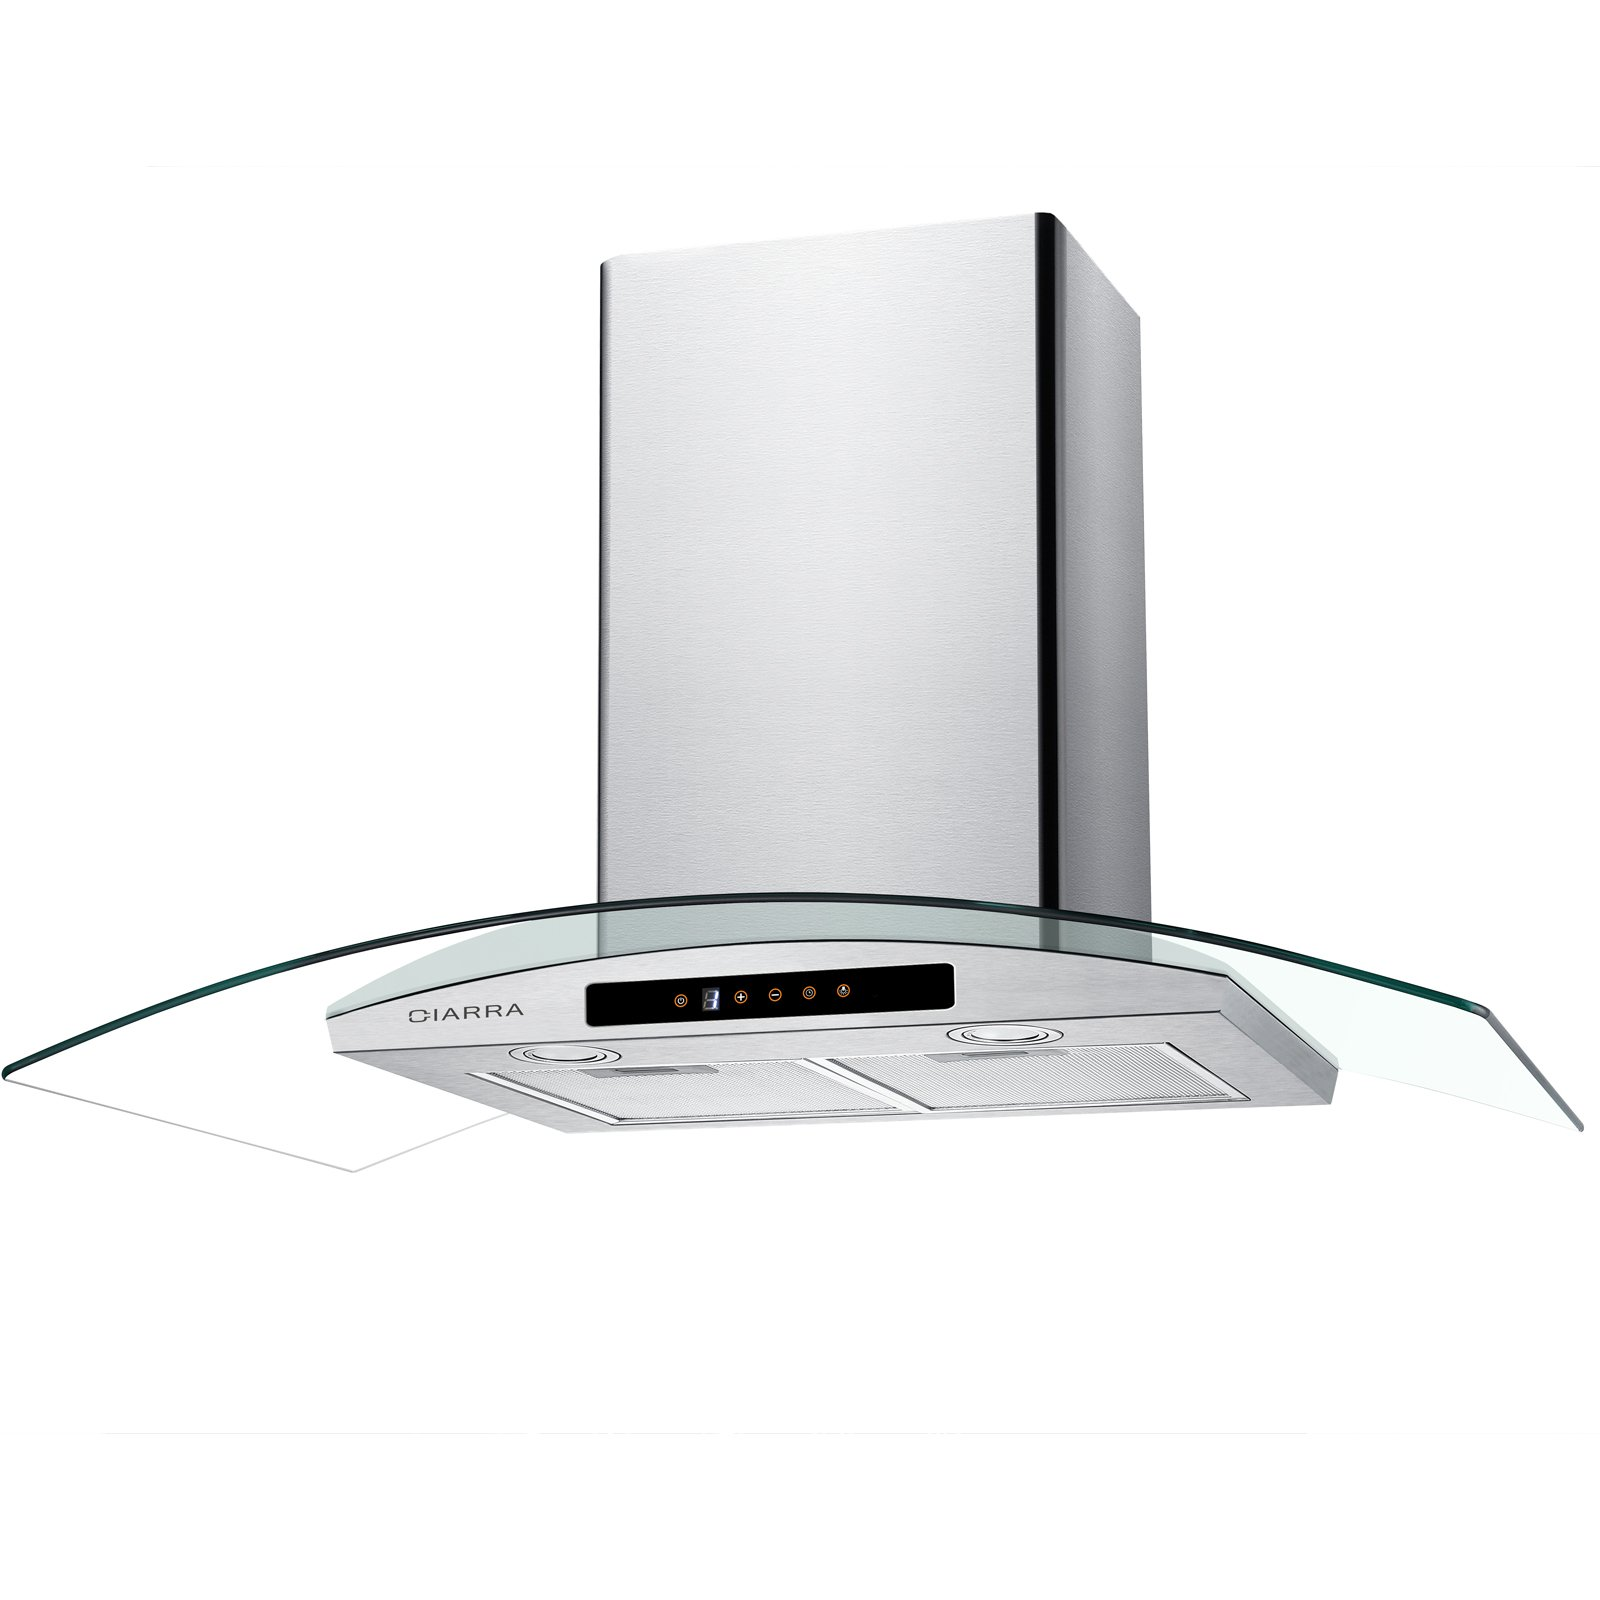 CIARRA 30'' Wall Mount Range Hood Touch Control,LED Lights,3 Speeds,450 CFM,Tempered Glass,Stainless Steel,Washable Filters,Kitchen Cooking Vent Fan Hoods